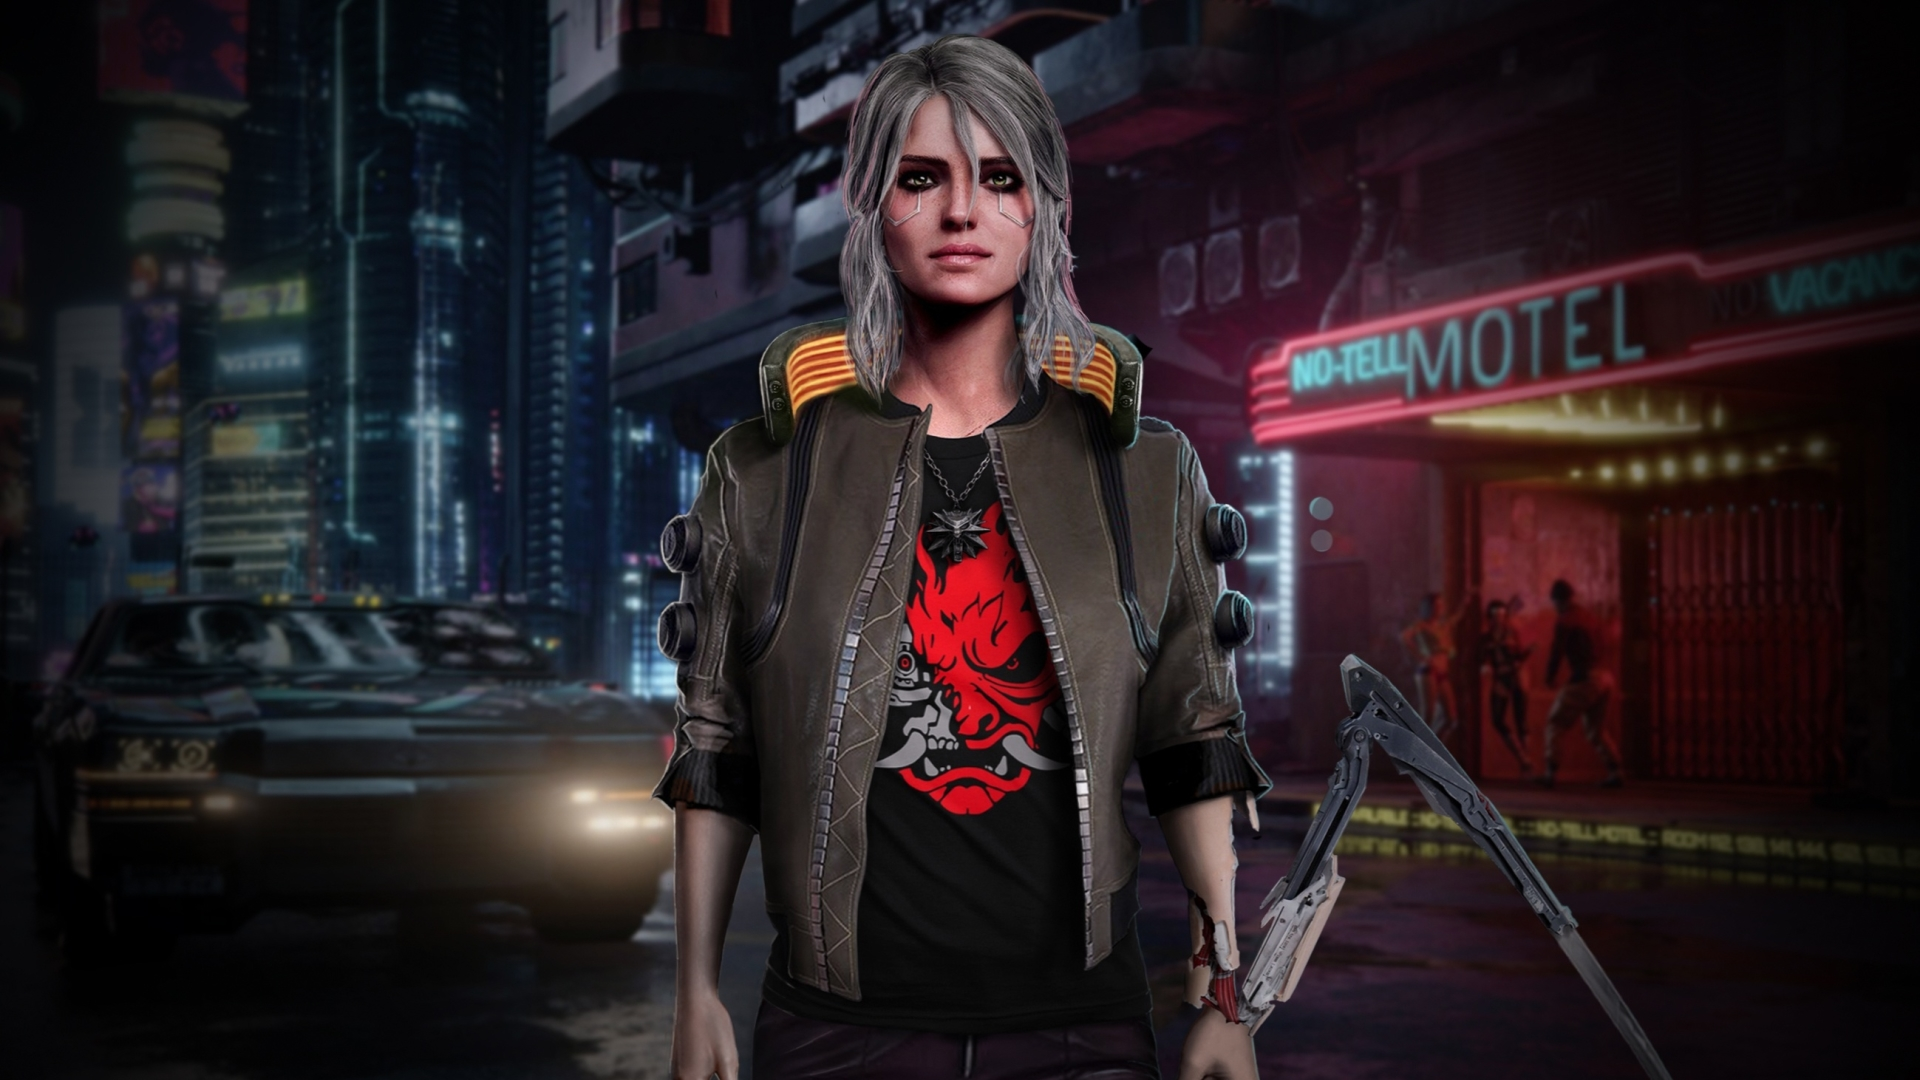 1920x1080 Ciri Witcher X Cyberpunk 2077 1080p Laptop Full Hd Wallpaper Hd Games 4k Wallpapers Images Photos And Background